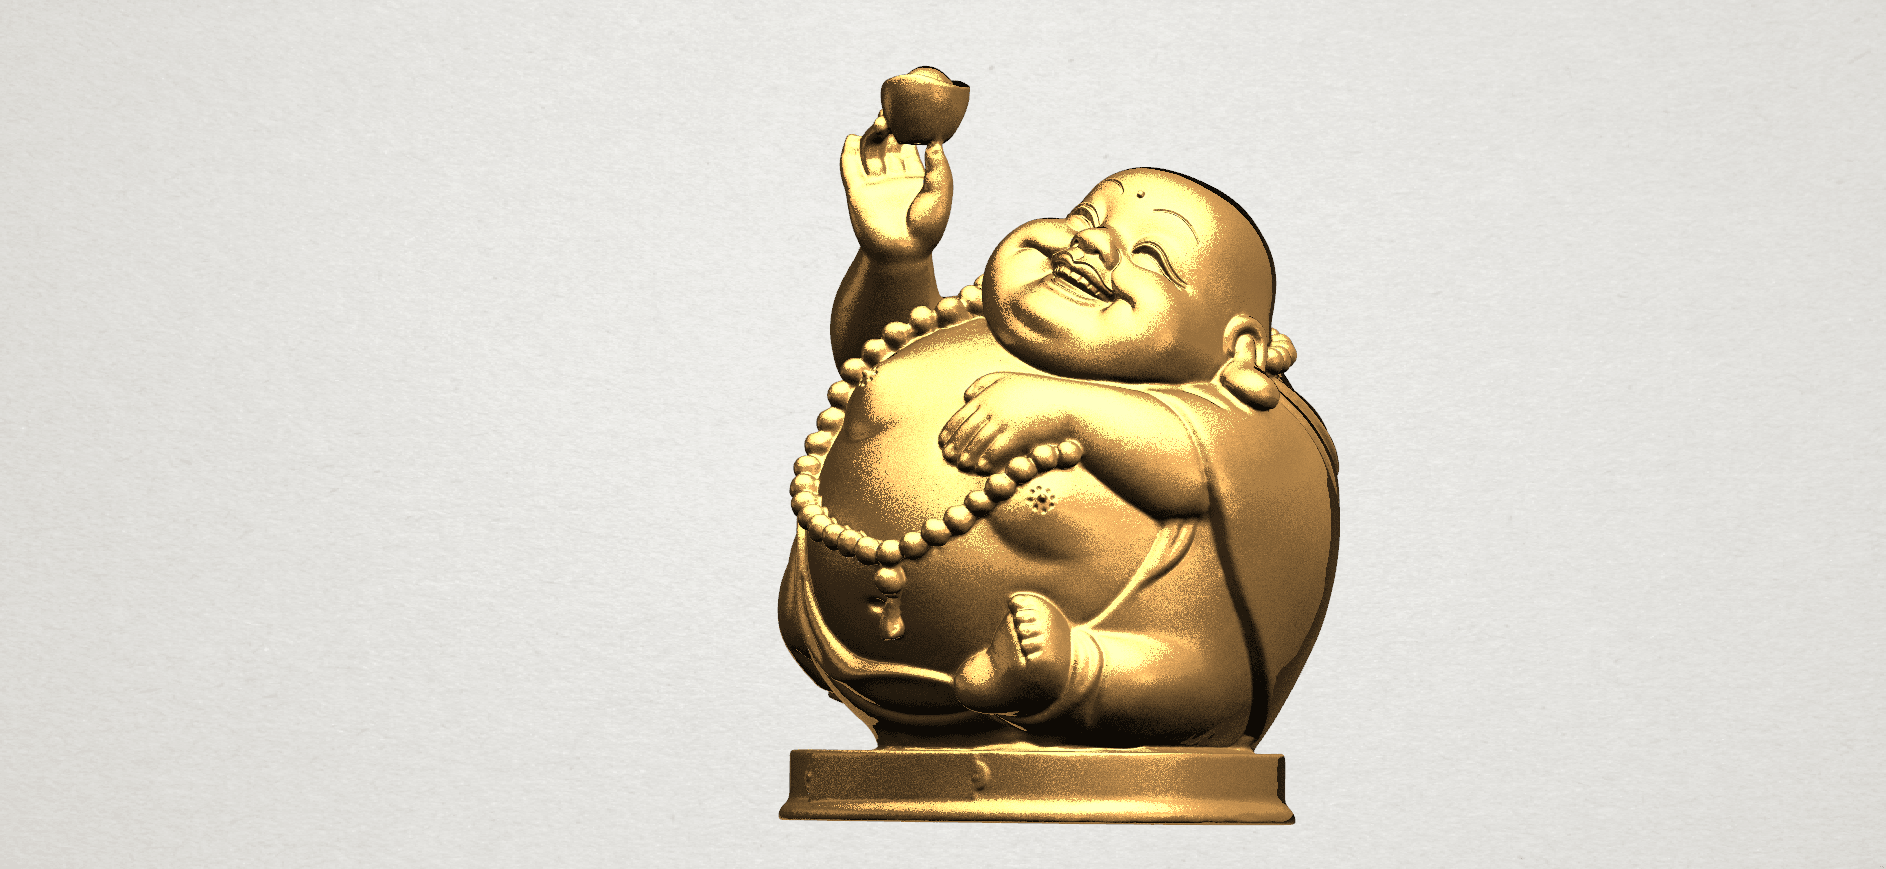 Metteyya Buddha 07 - 88mm - A02.png Download free 3DS file Metteyya Buddha 07 • 3D printer model, GeorgesNikkei